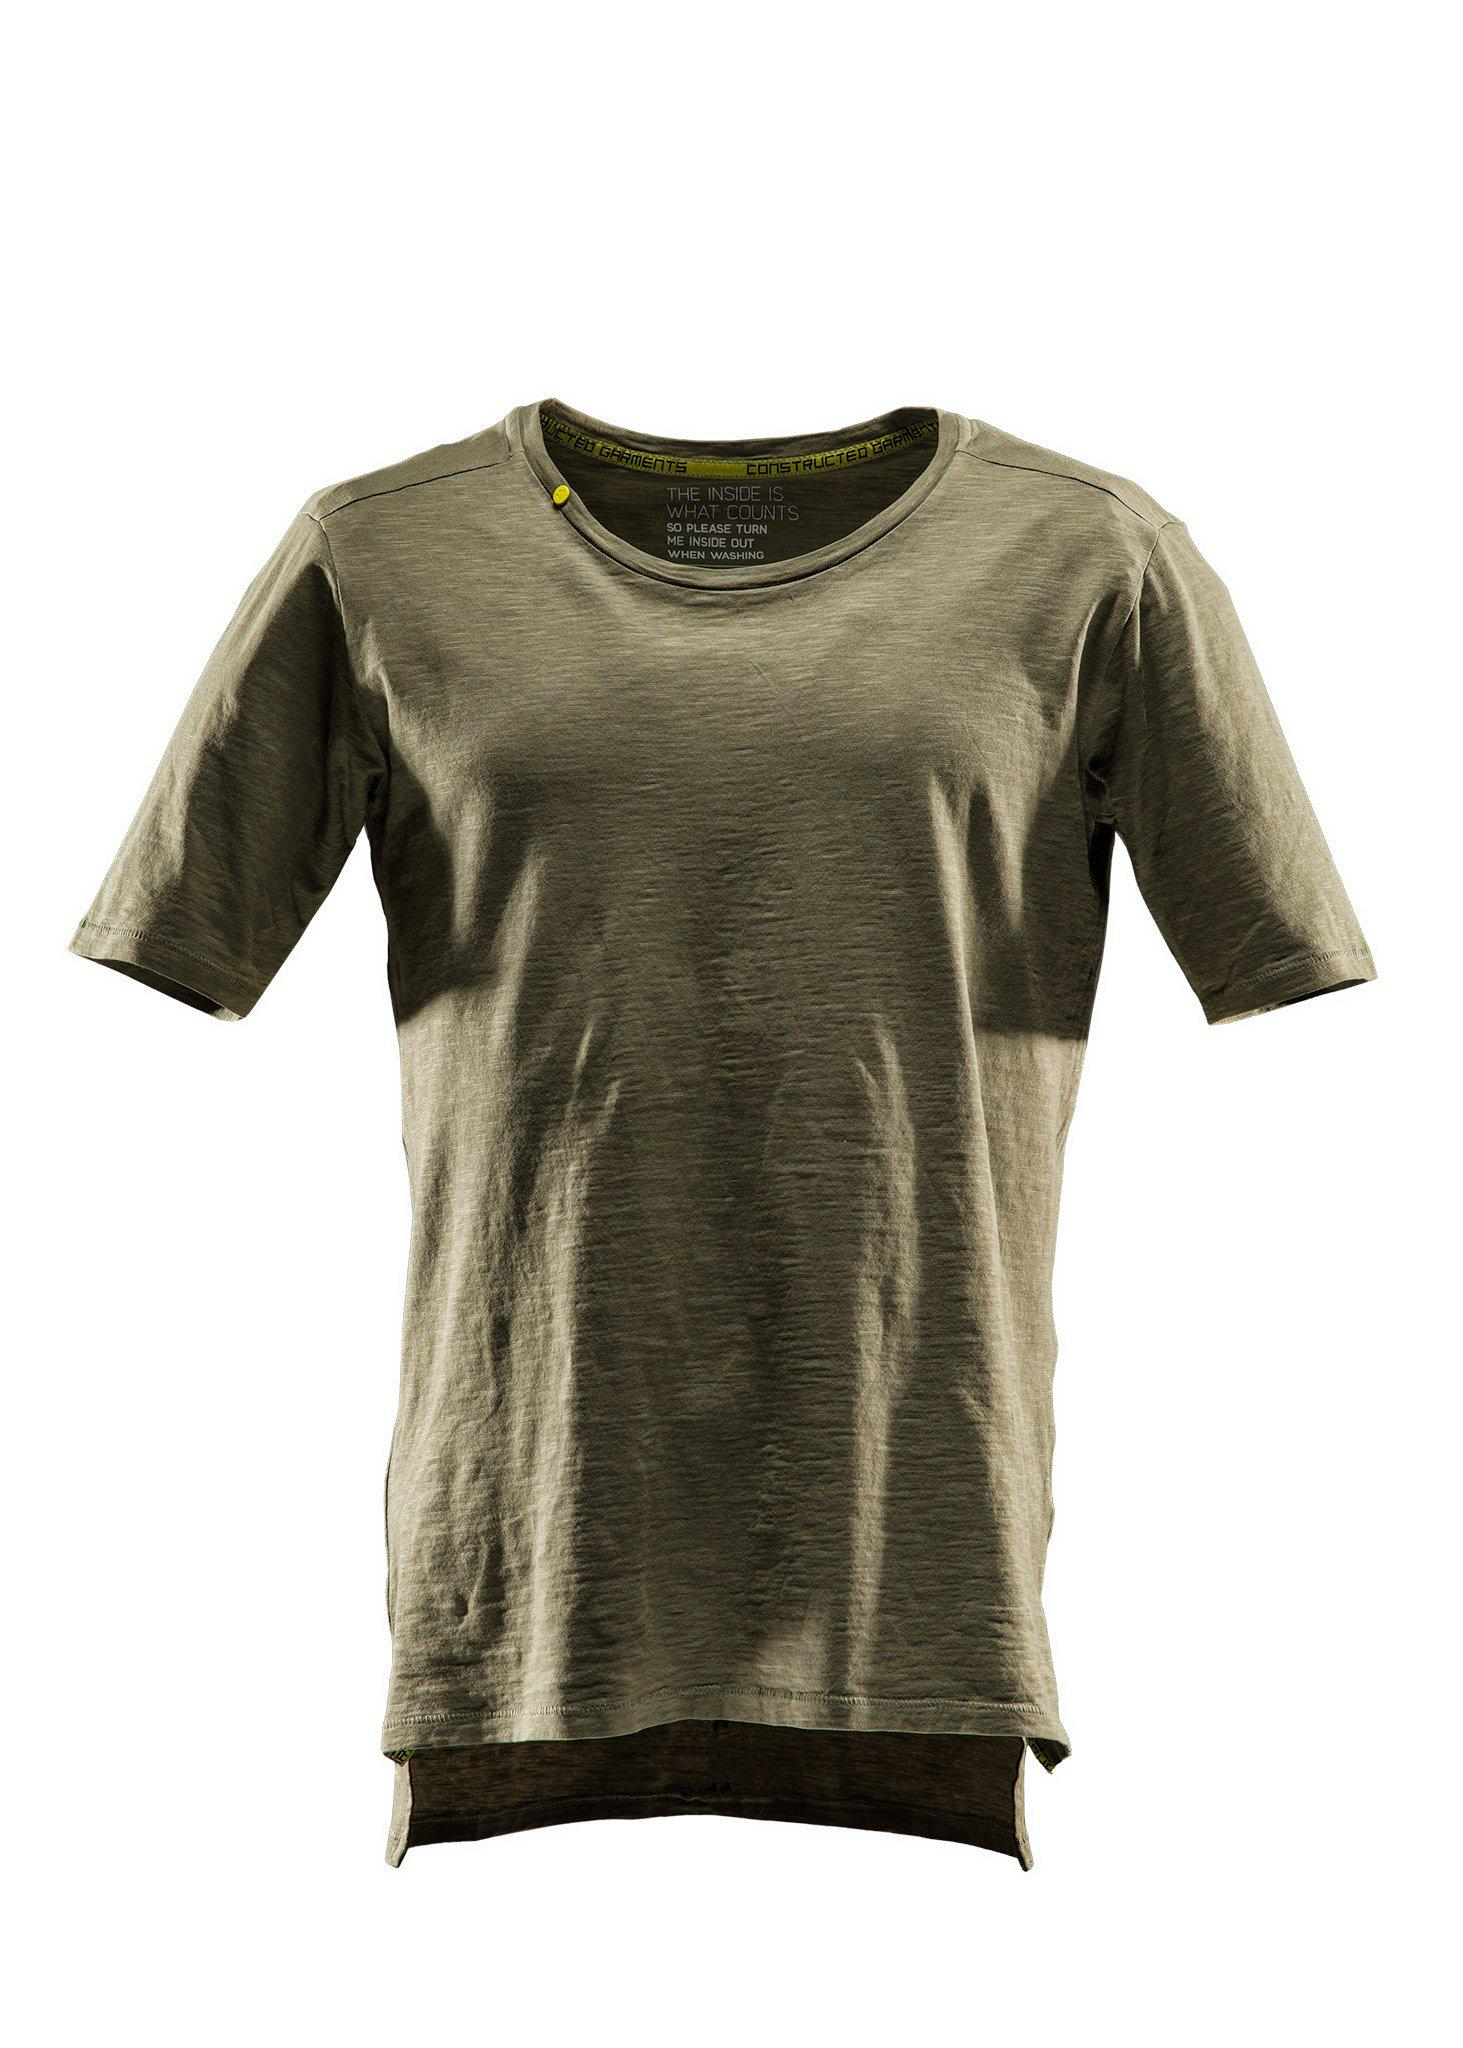 Comfort tee SS, T-shirt short sleeve, Burnt olive green, L